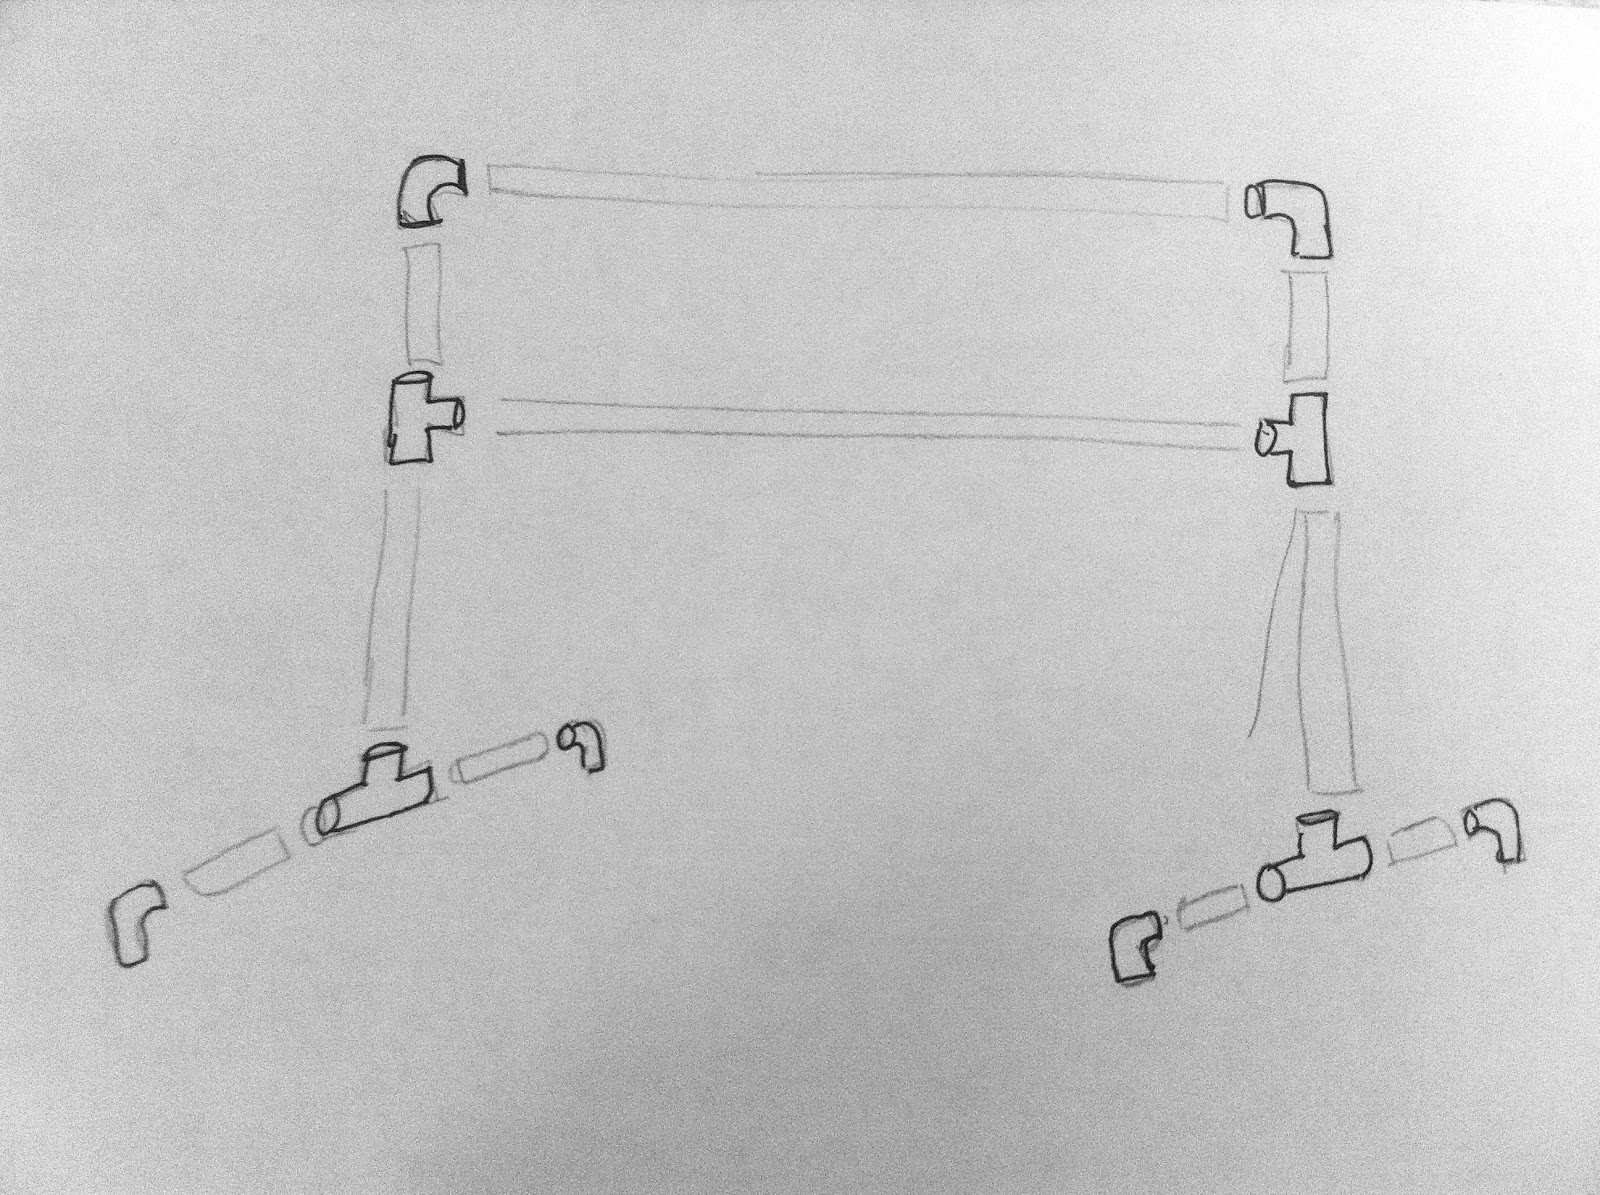 My sketch of approximate layout of double barre